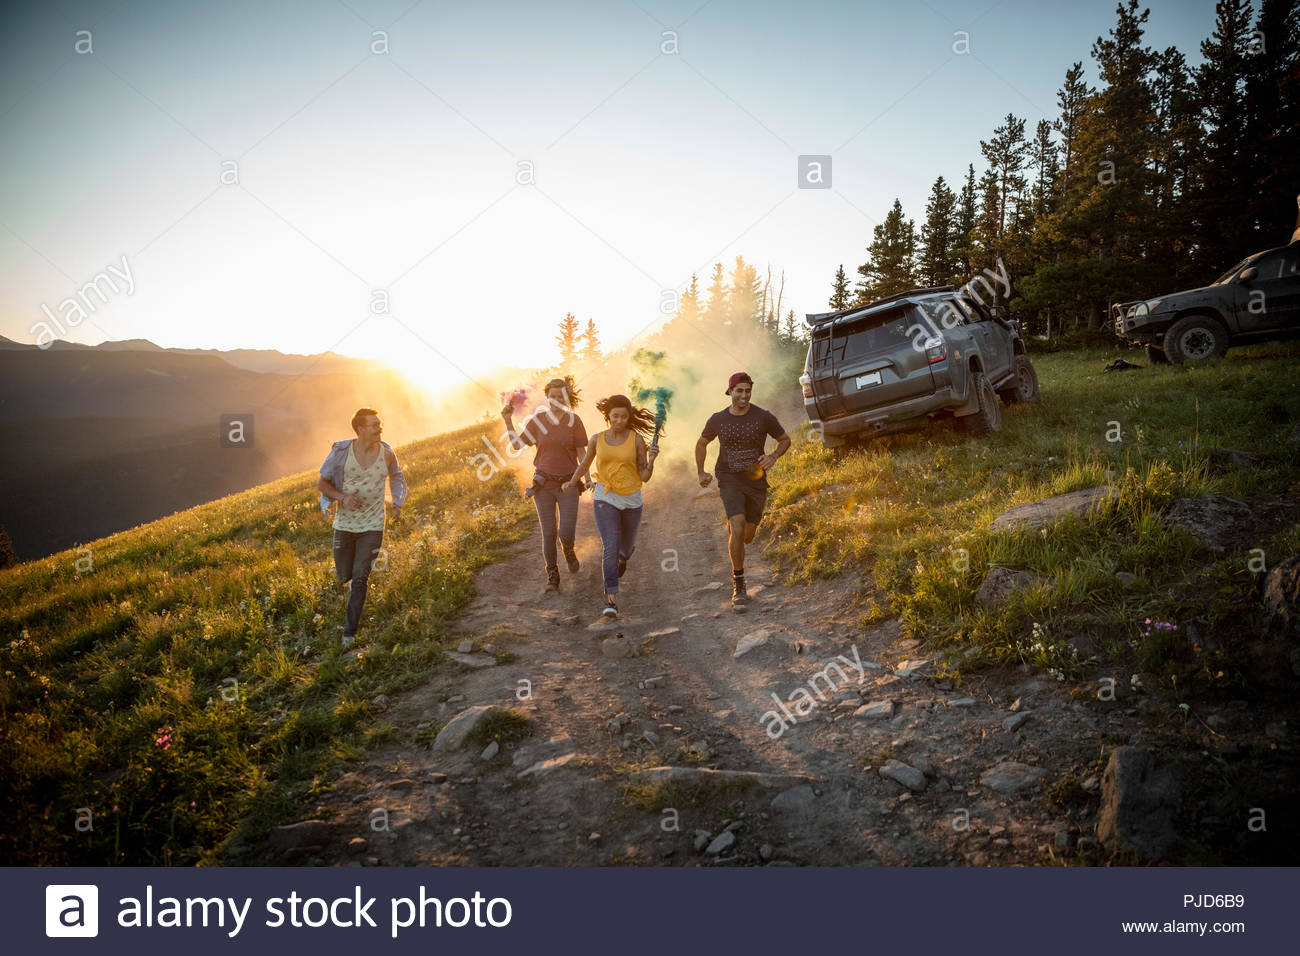 Playful friends running with smoke bombs on remote road, Alberta, Canada - Stock Image